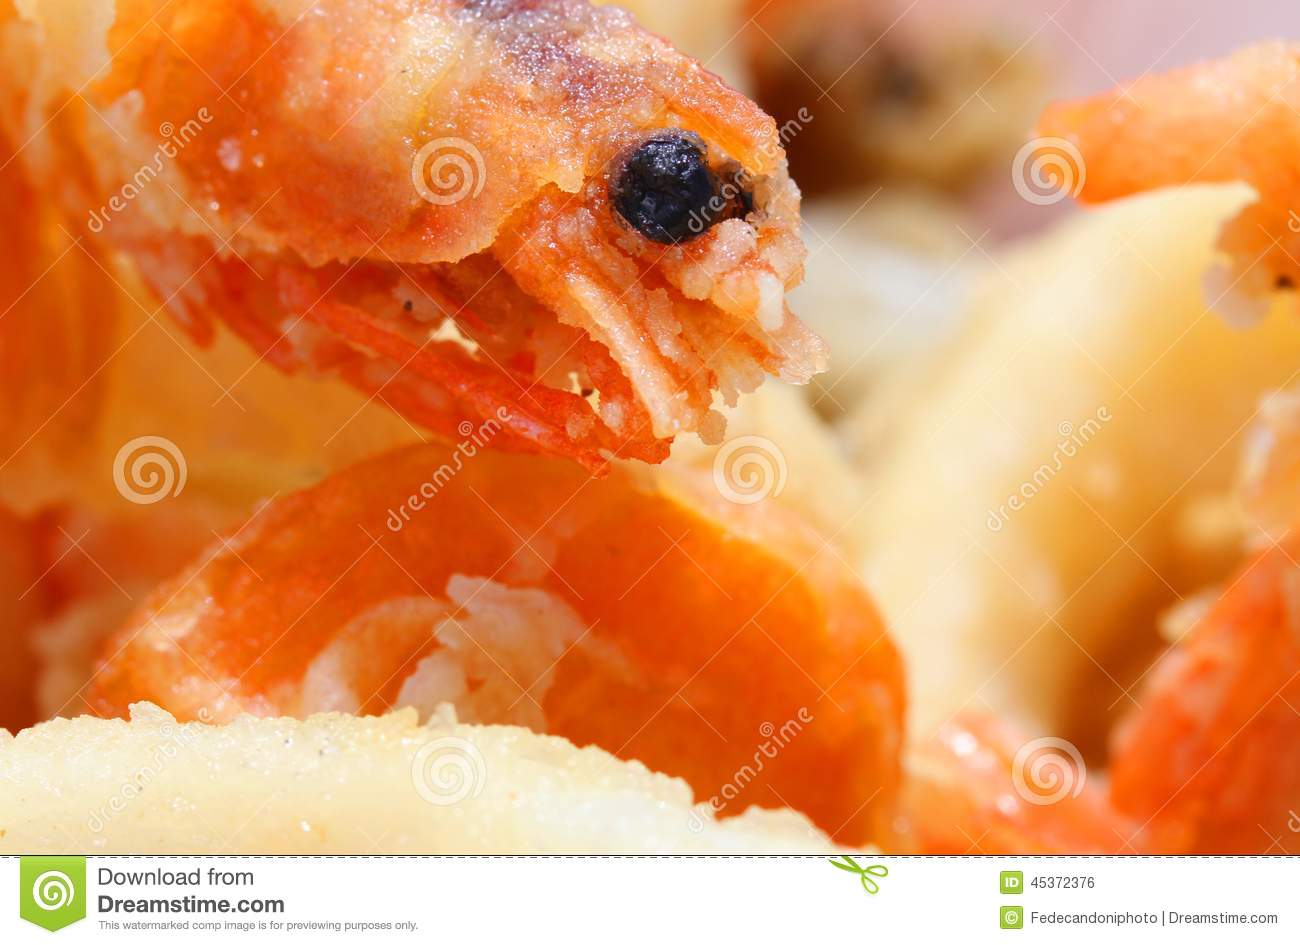 Fried shrimp with macro lens and other fried fish